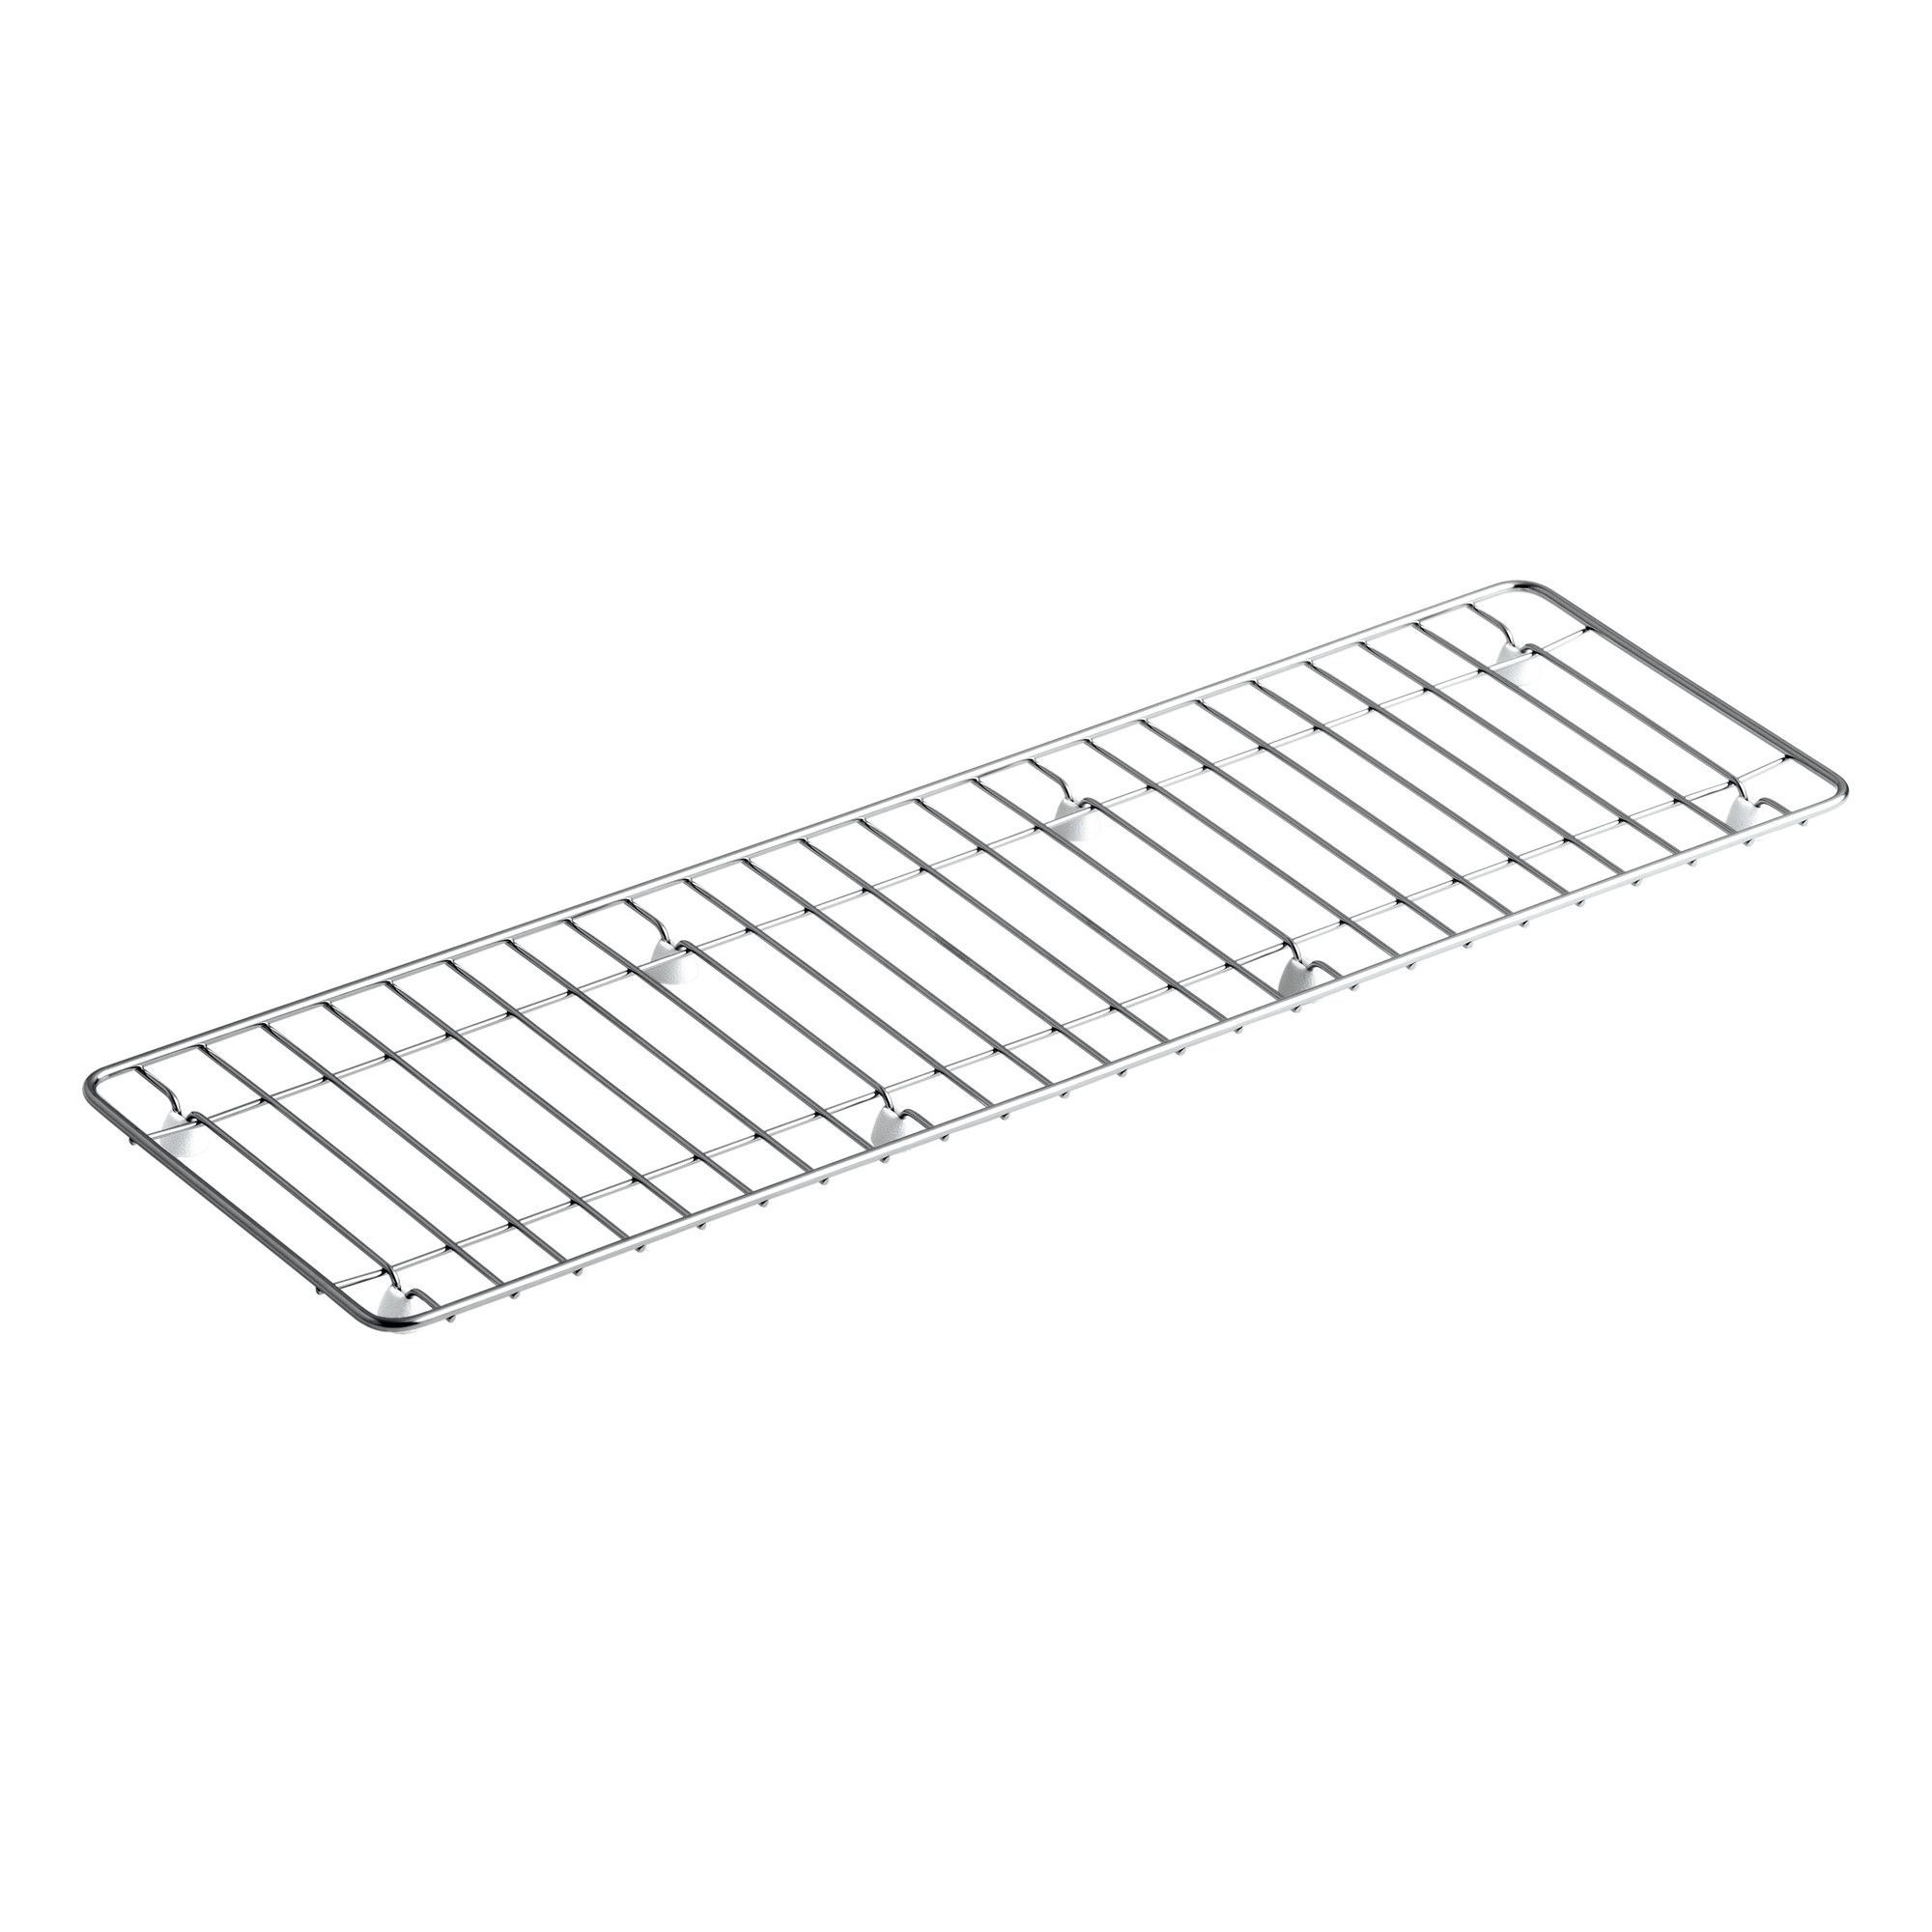 "Undertone Stainless Steel Sink Rack, 25-3/16"" x 7-11/16"""